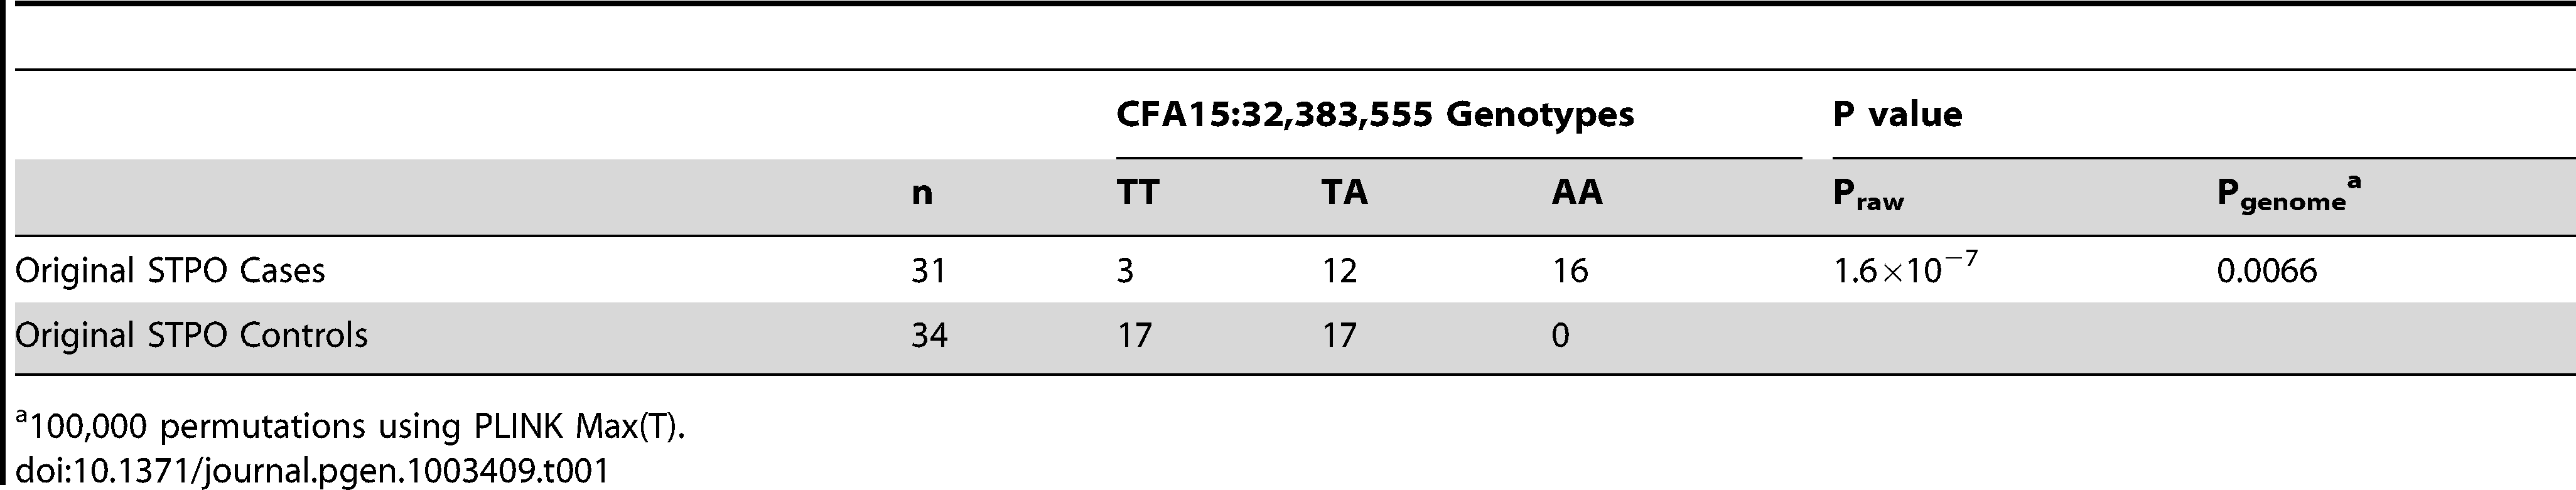 Association between SCCD risk and the peak GWAS SNP, CFA15:32,383,555, in STPO cases and controls.